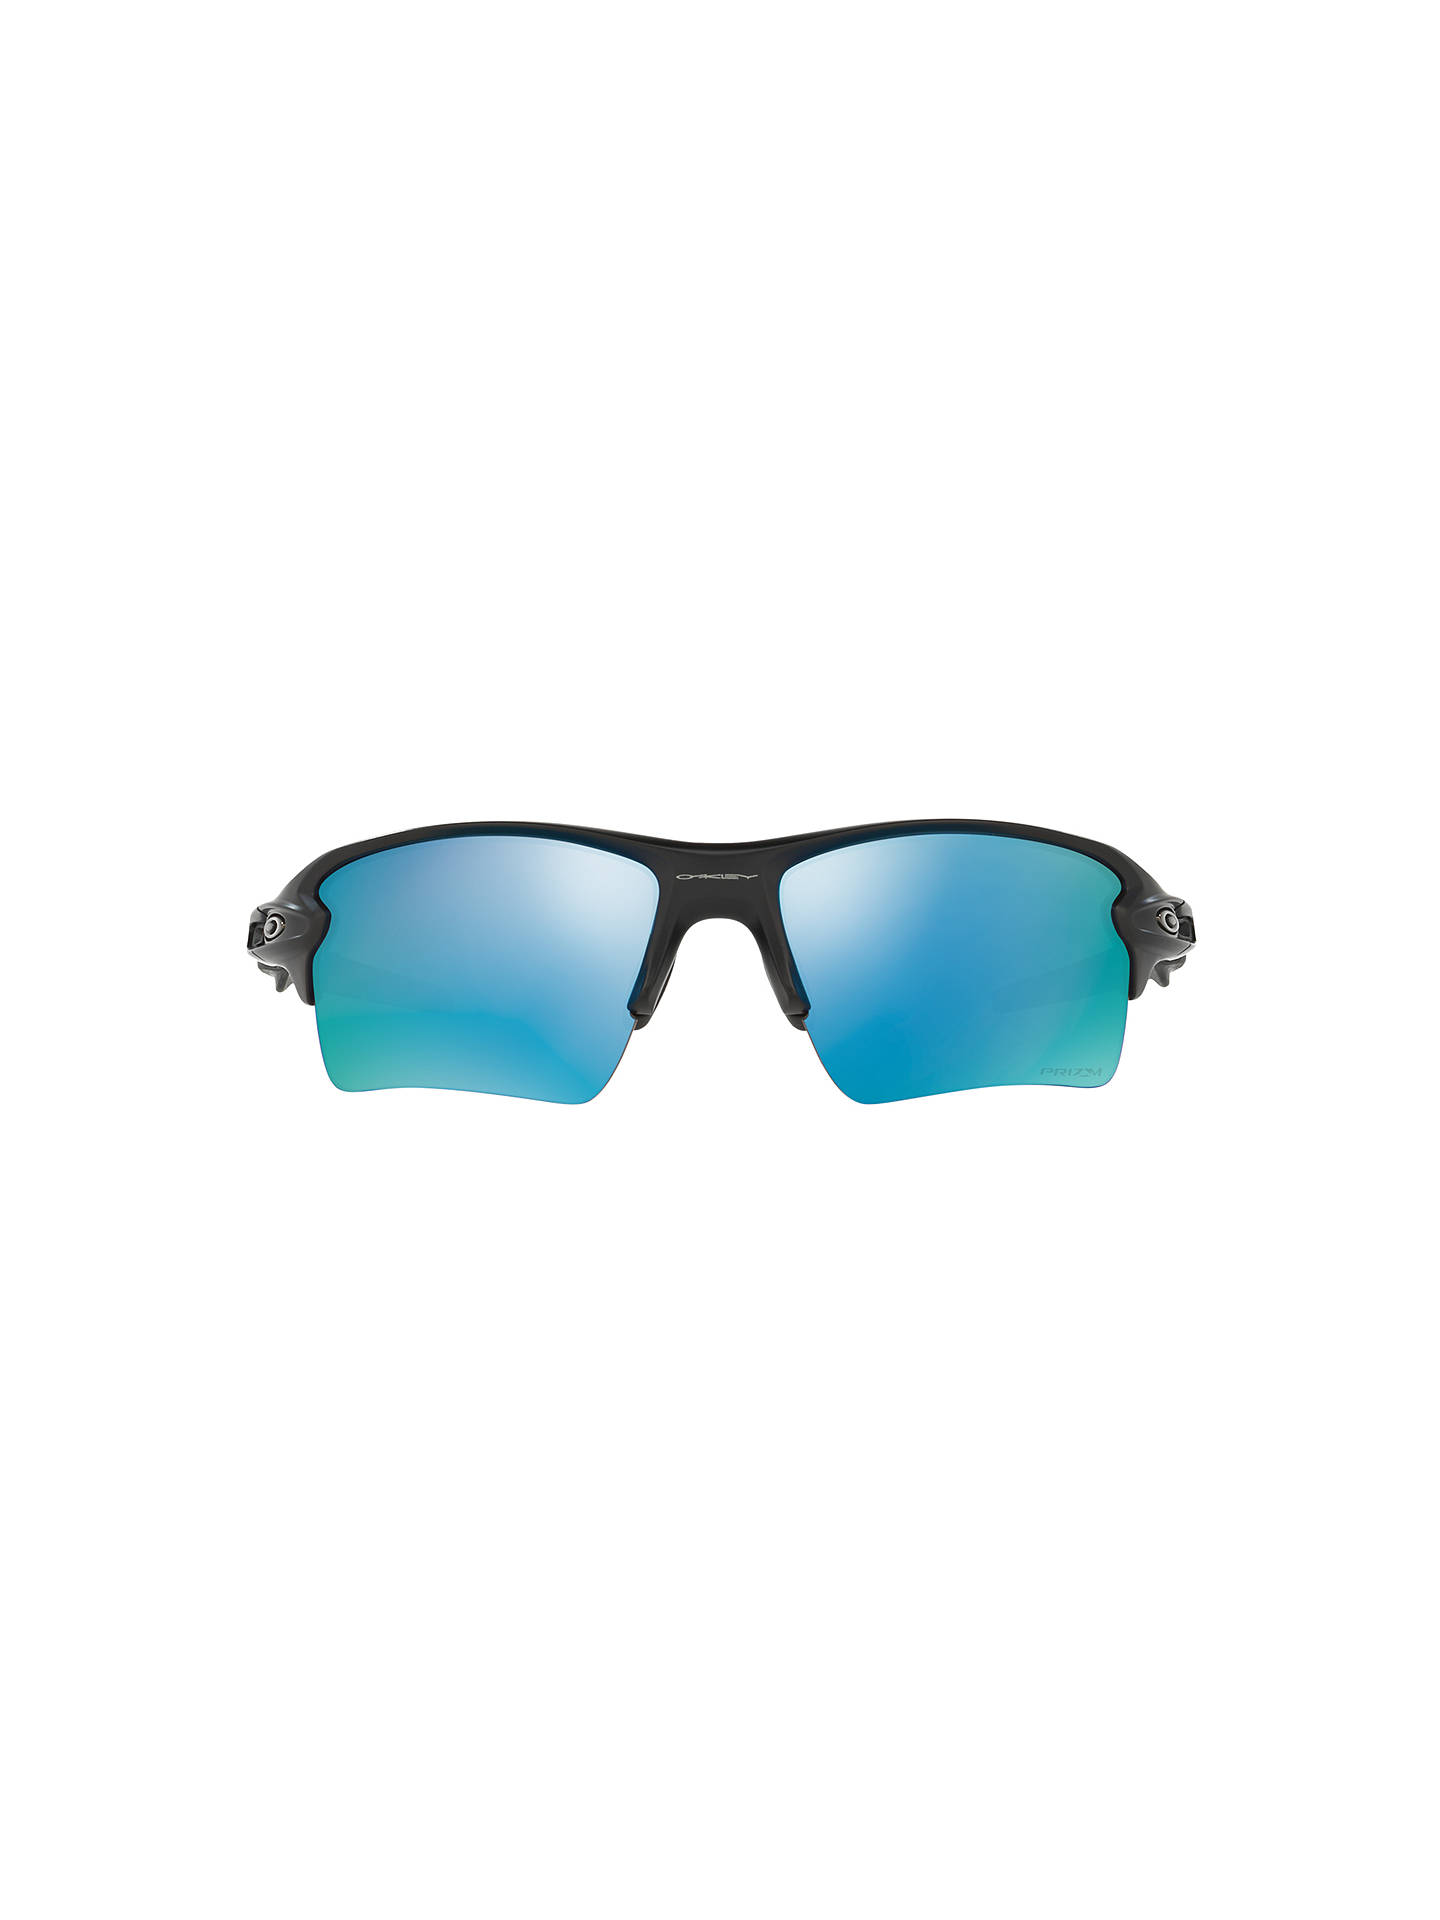 19bef3aed39 ... BuyOakley OO9188 Men s Flak 2.0 XL Prizm™ Polarised Rectangular  Sunglasses